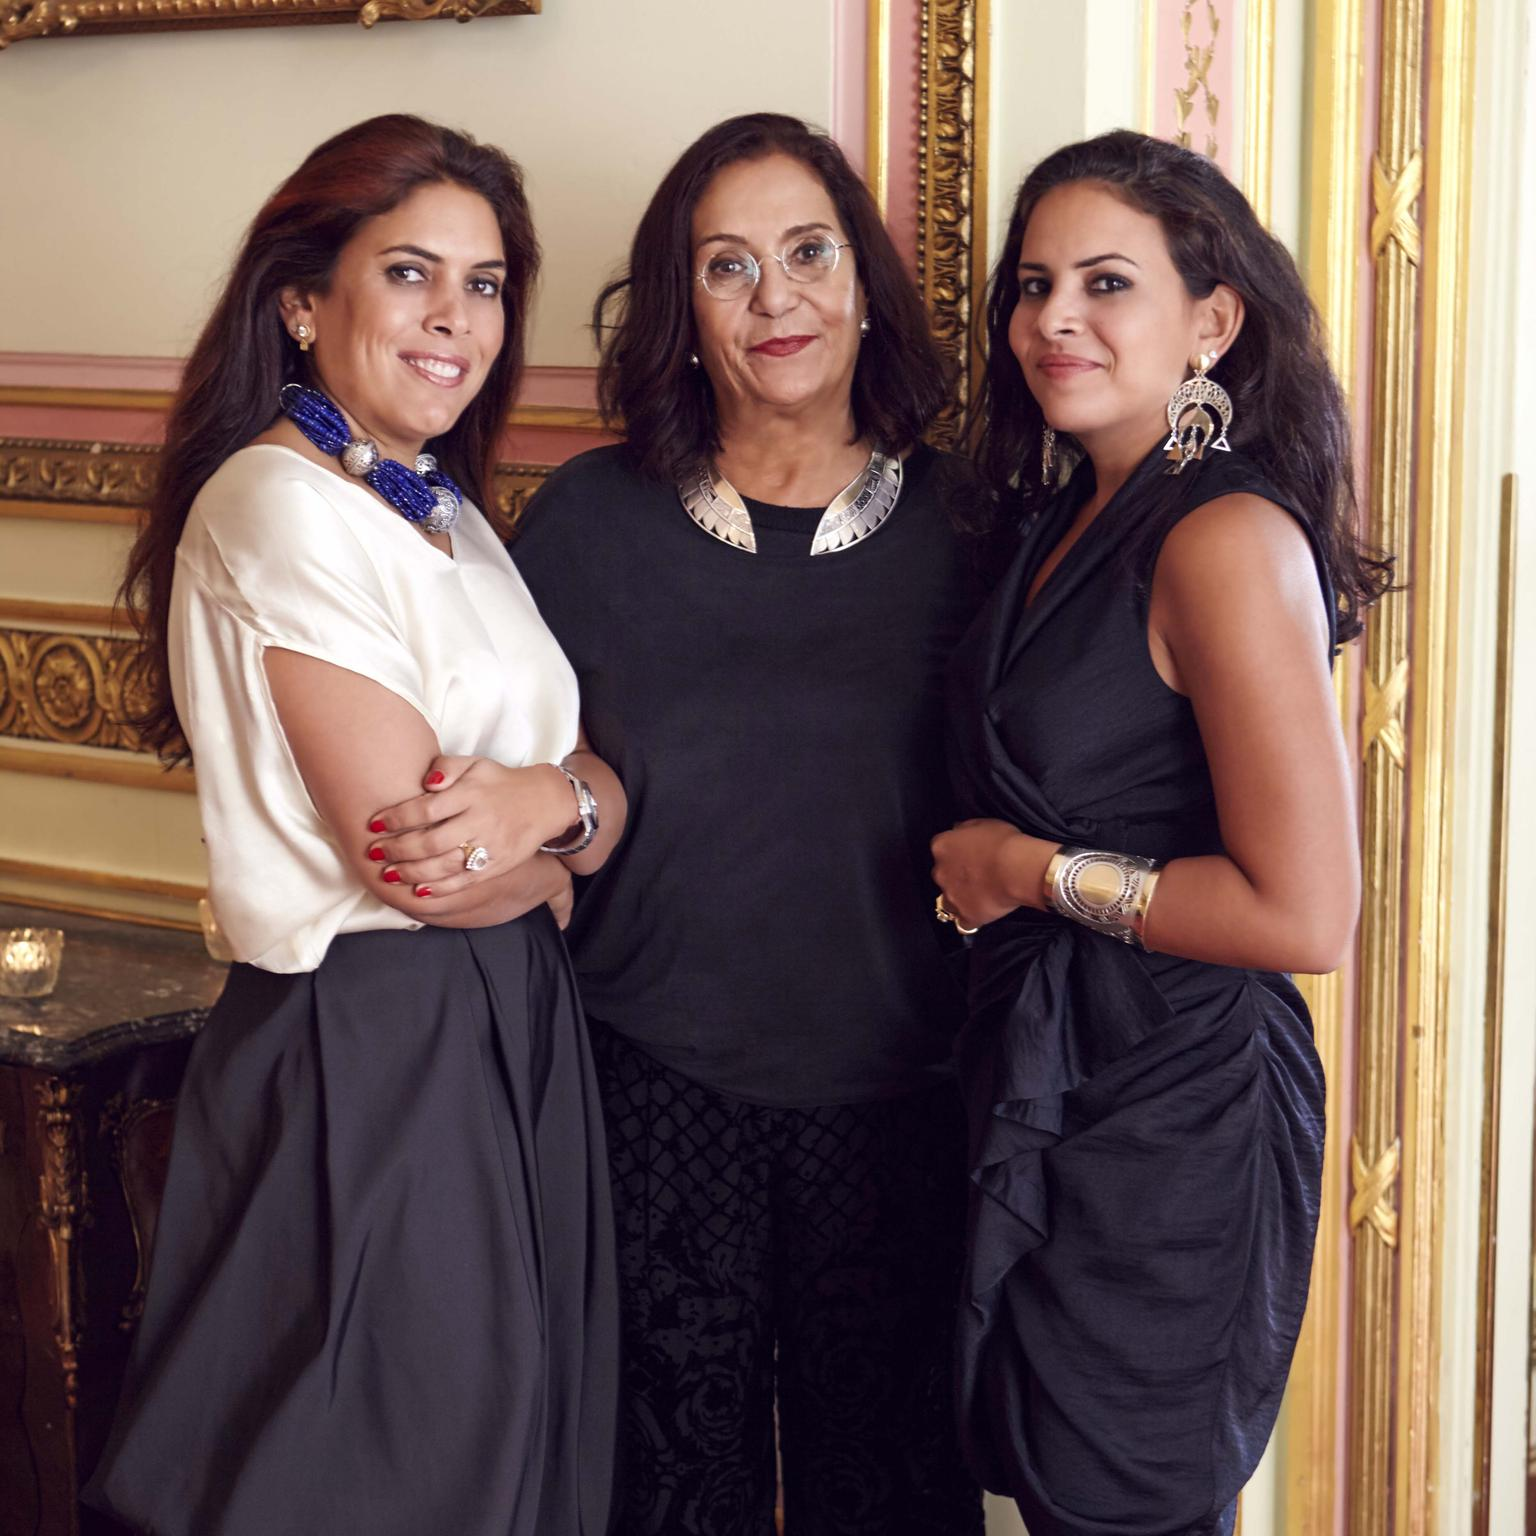 Founder and Creative Design, Azza Fahmy with her daughters Fatma and Amina Ghali